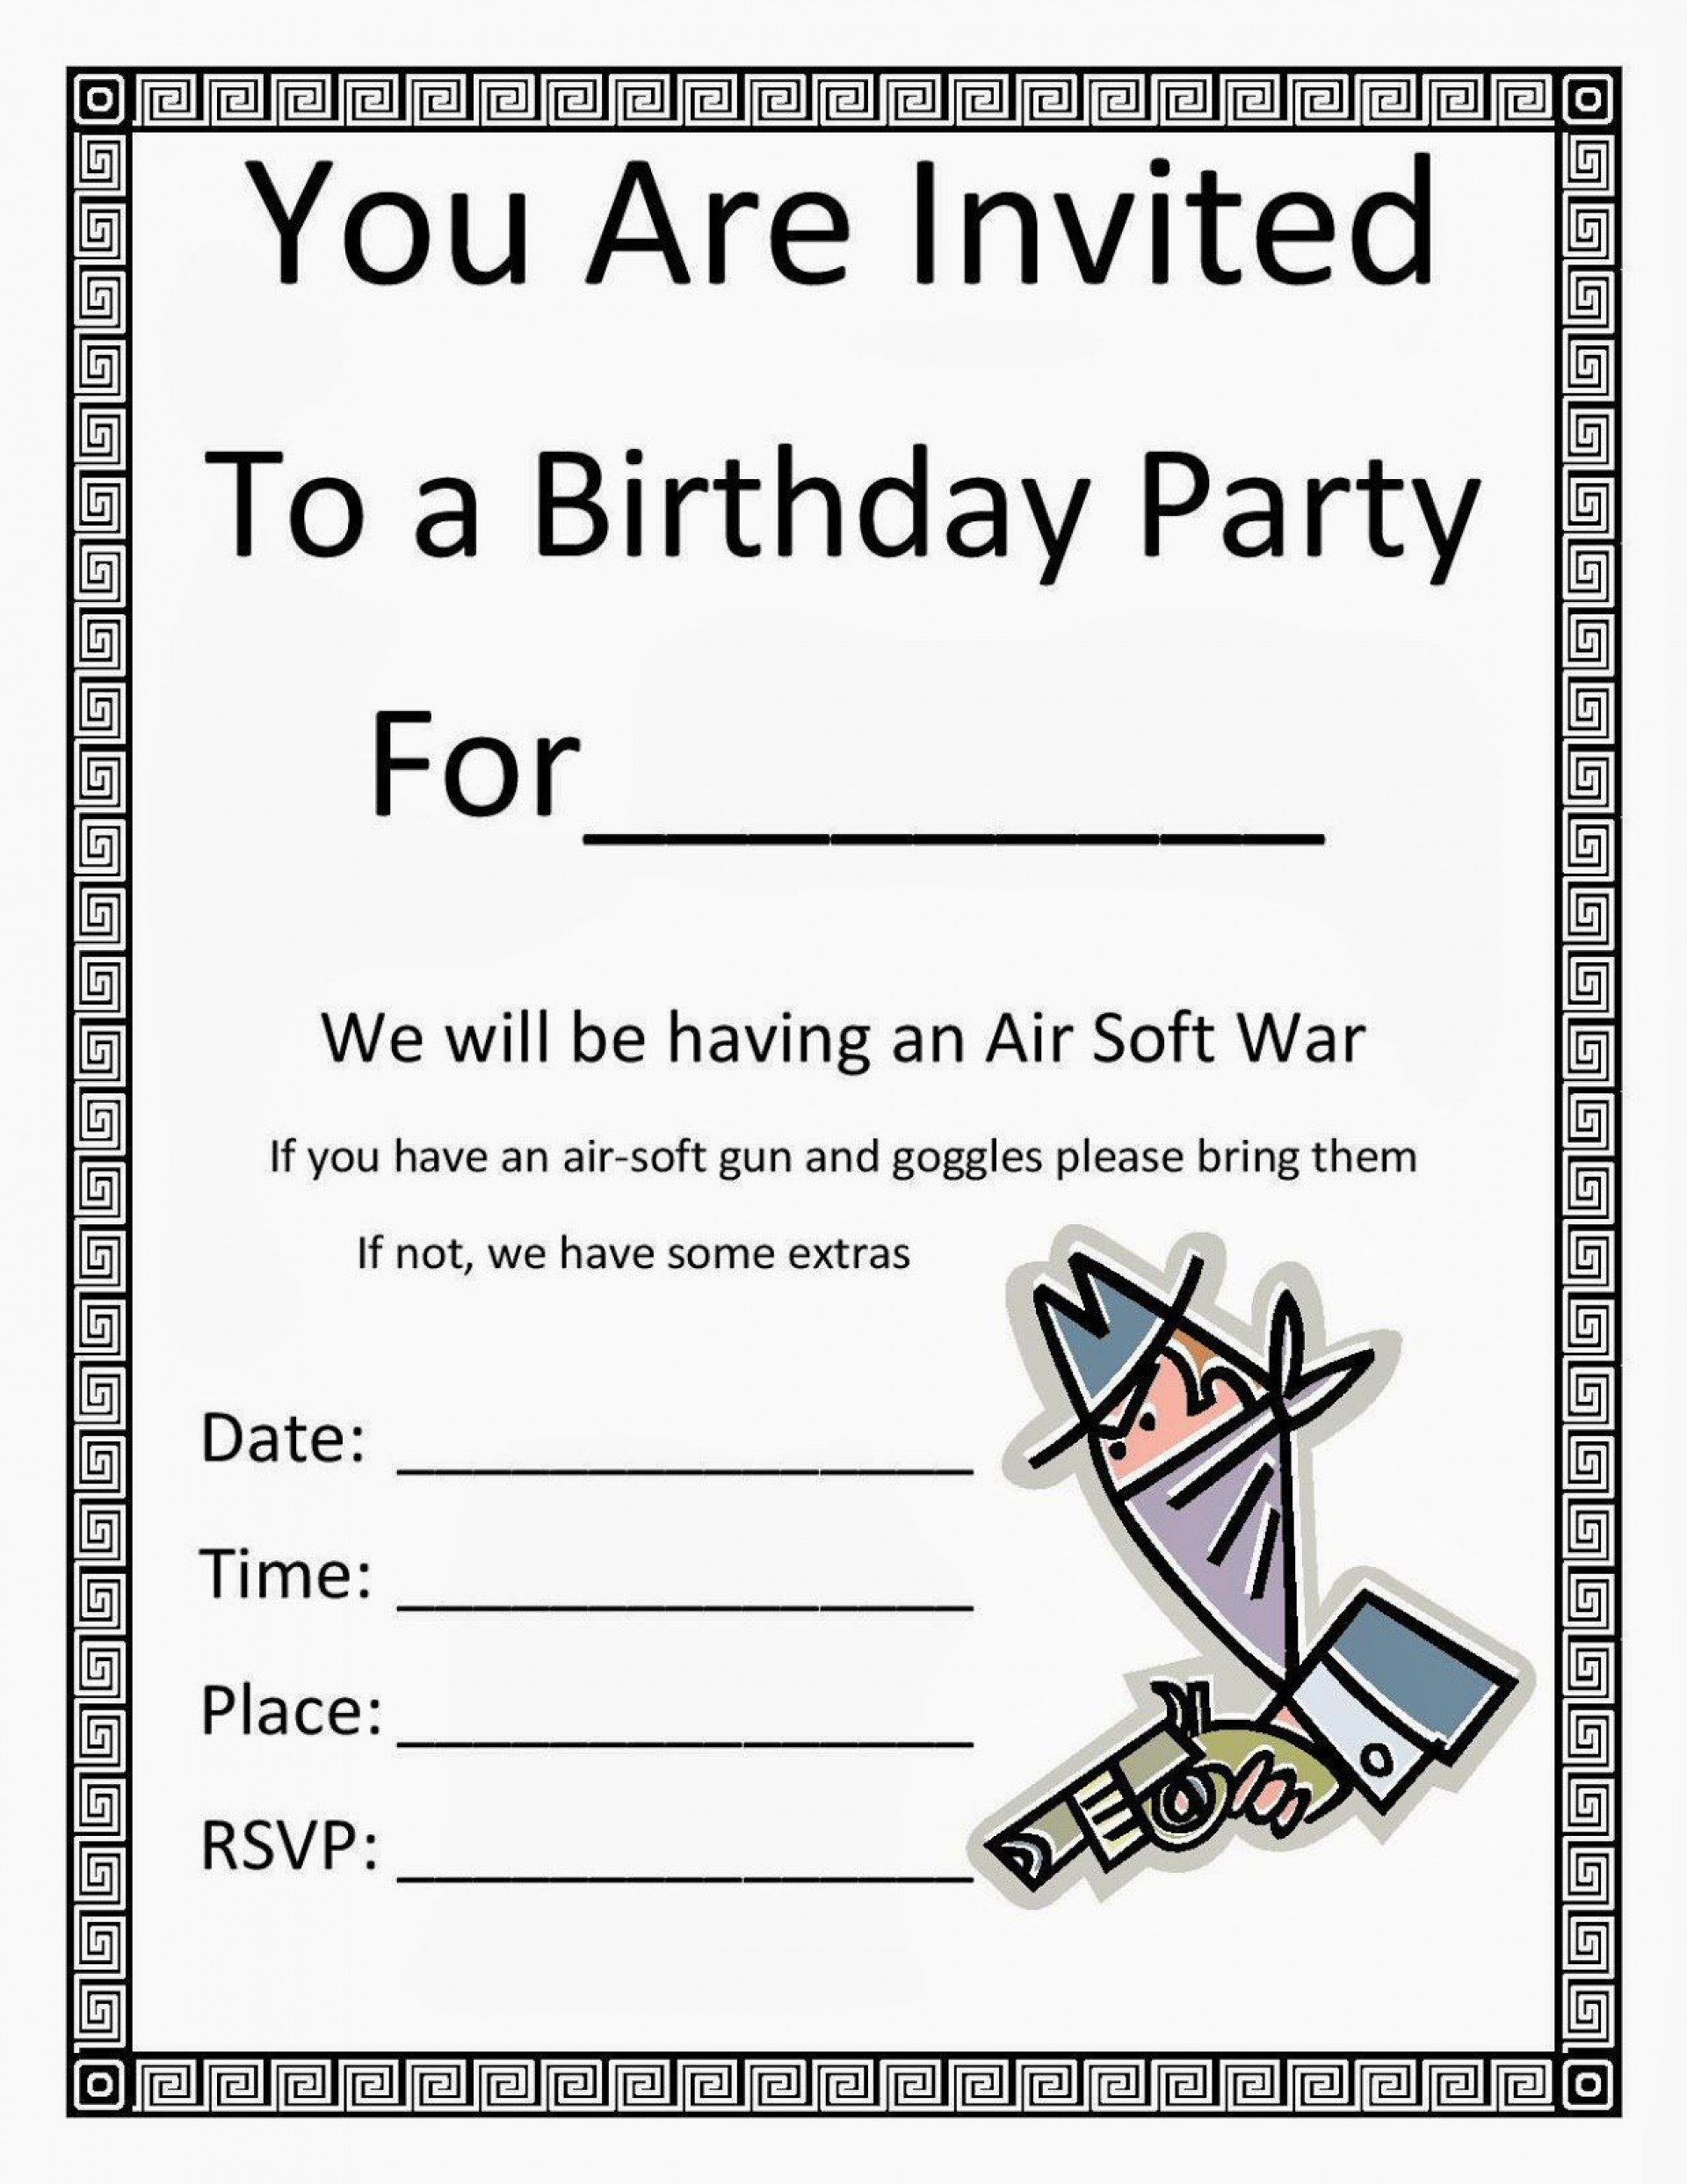 001 Fantastic Free Online Birthday Party Invitation Template Inspiration  Templates Maker1920